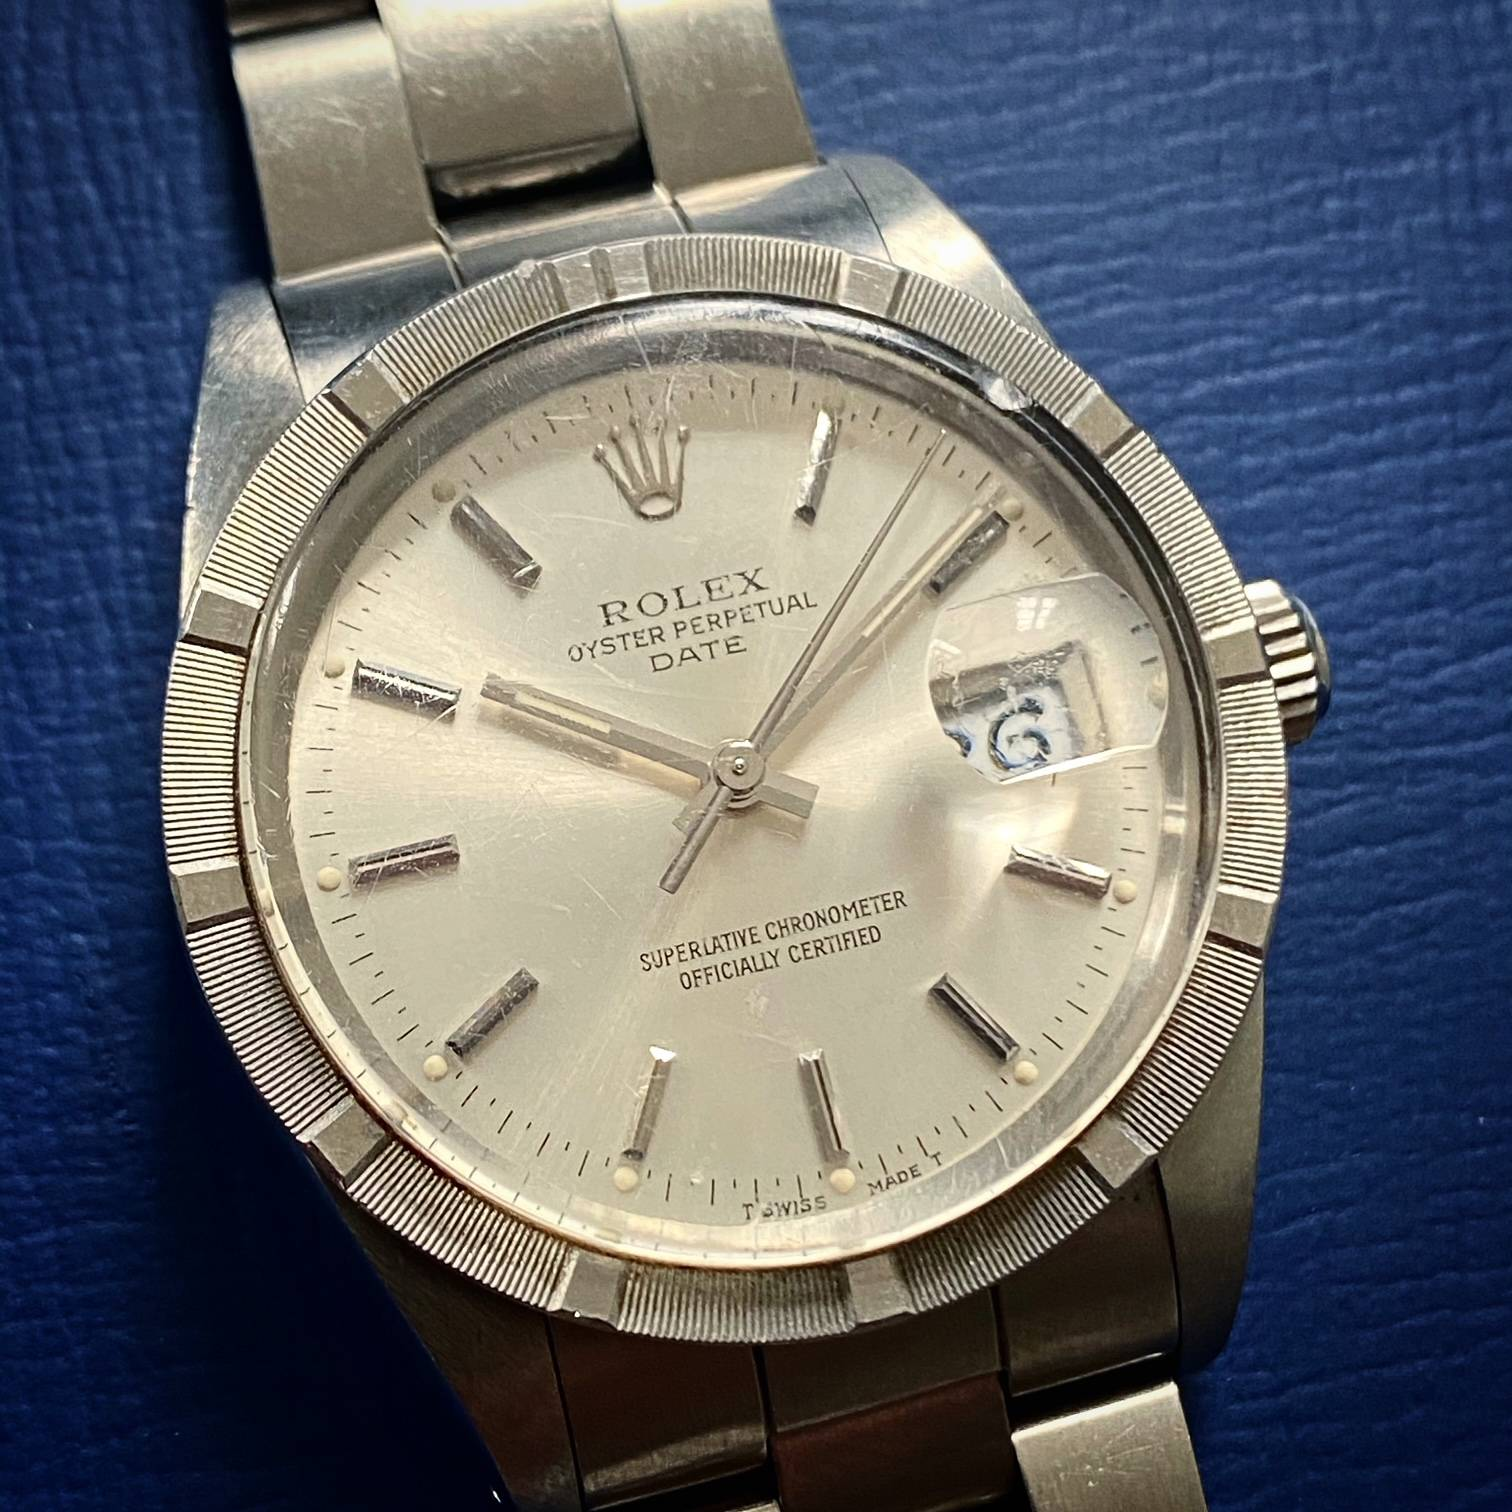 ROLEX OYSTER PERPETUAL DATE ENGINE TURNED BEZEL-2